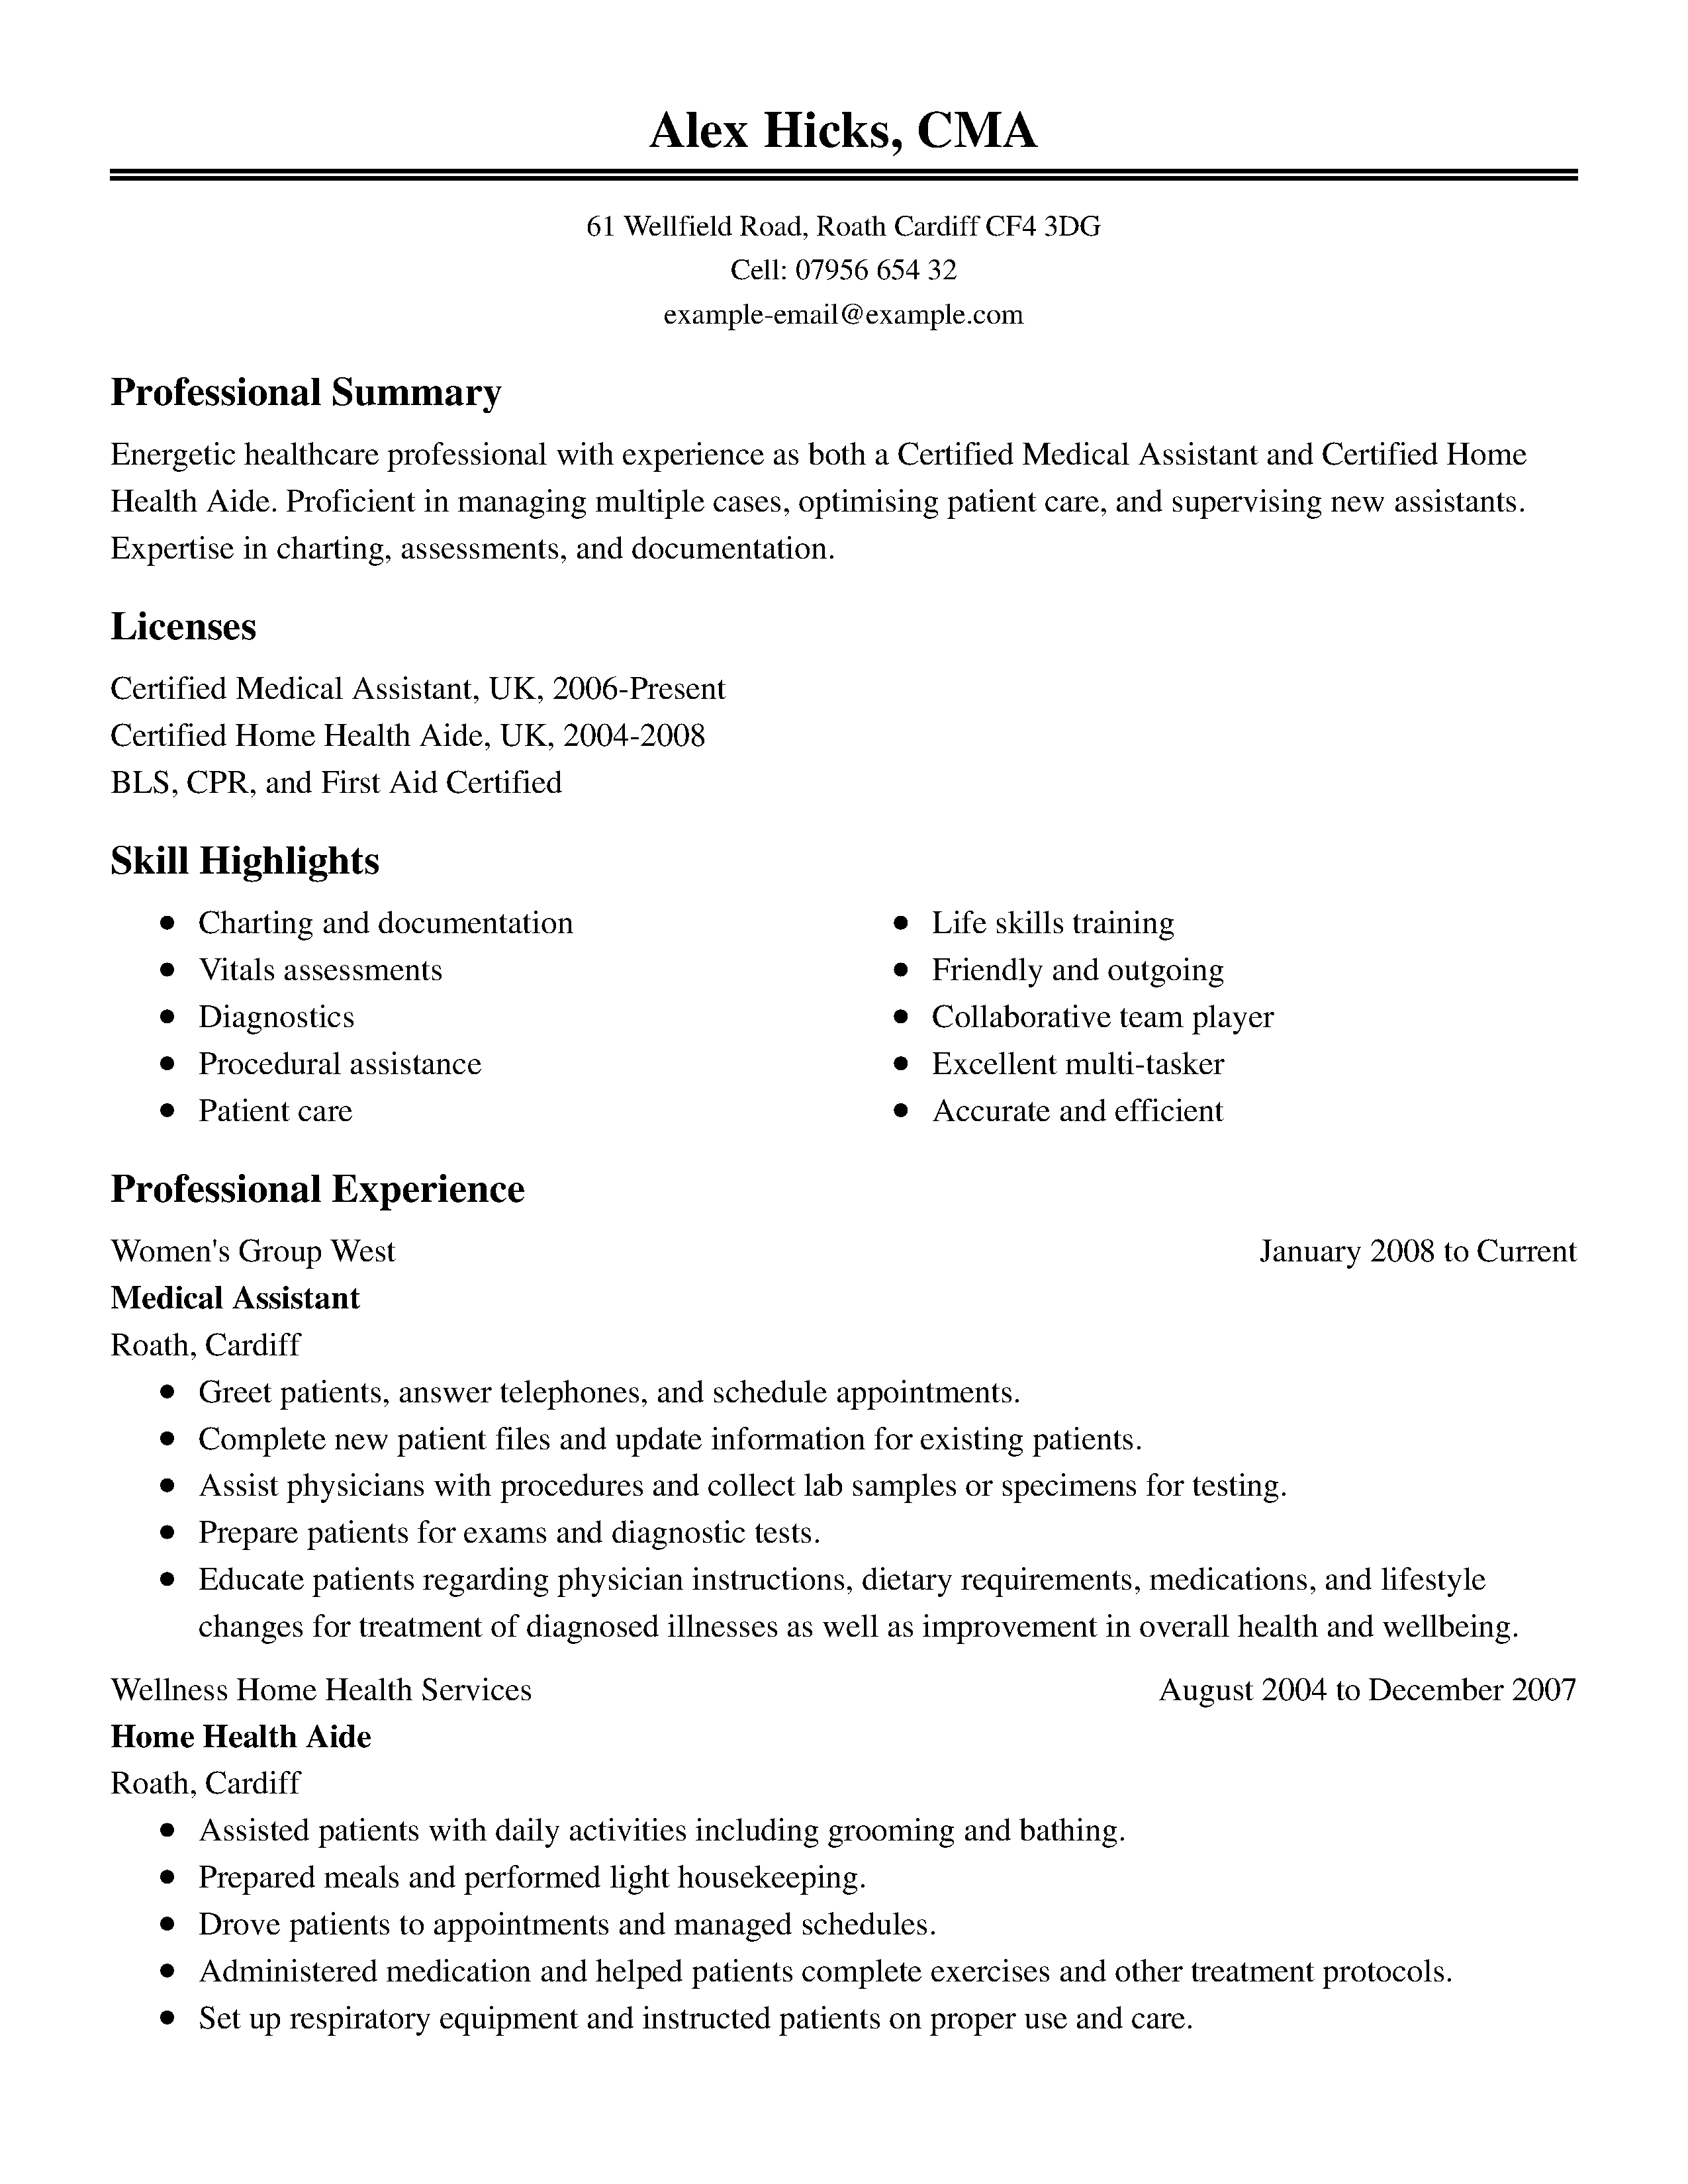 Resume Templates For Word #3